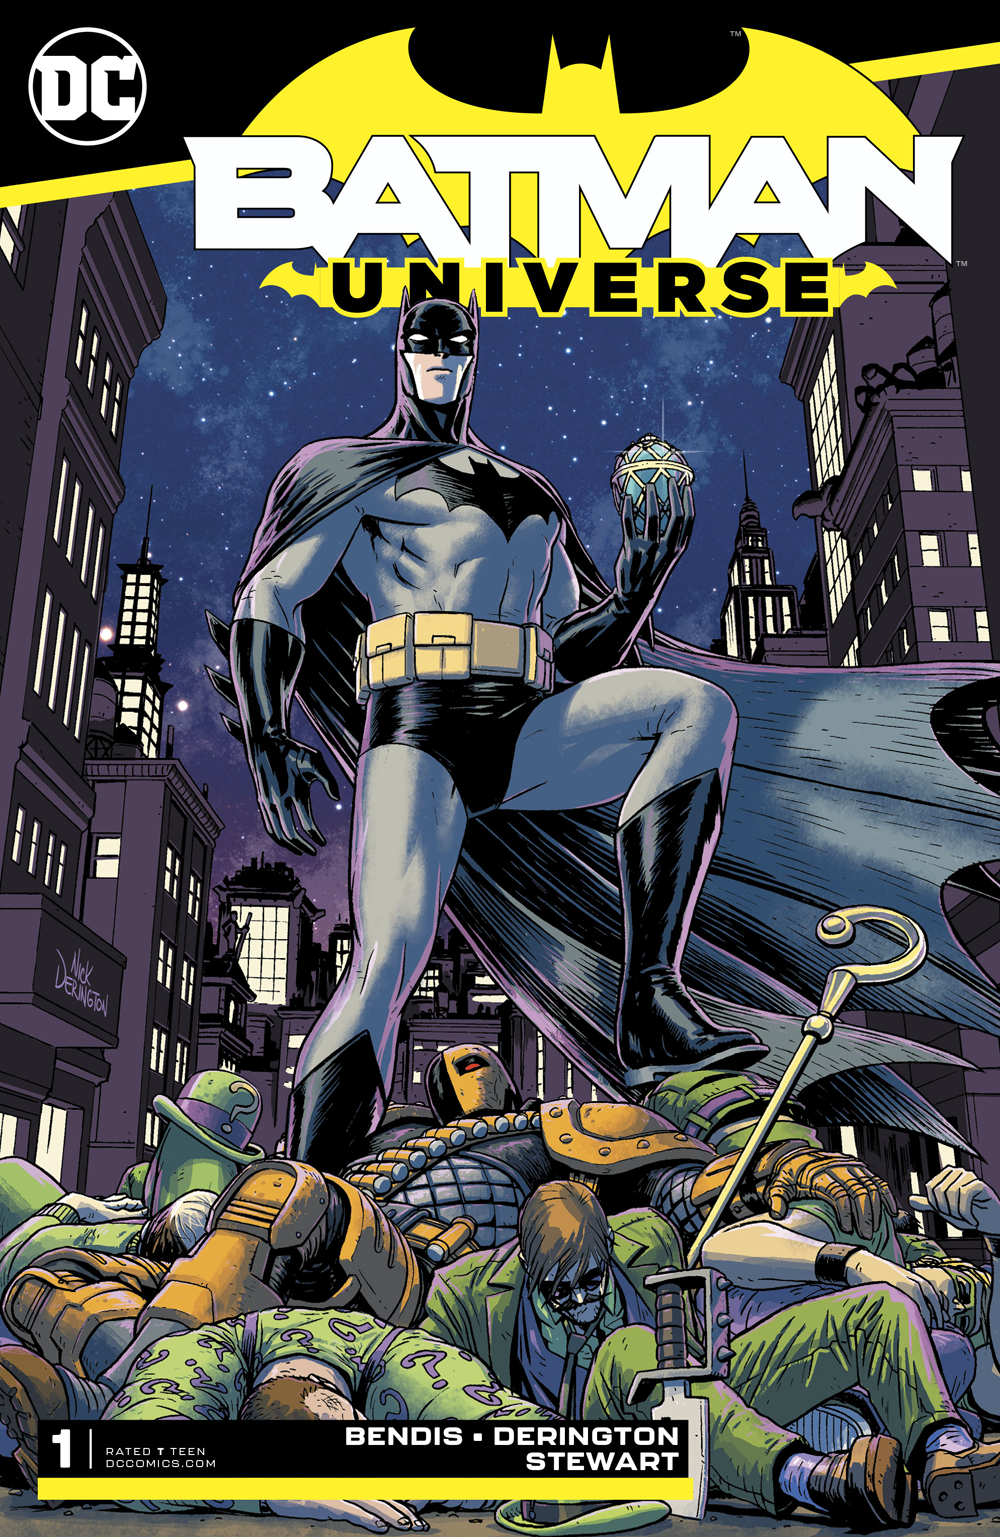 BATMAN UNIVERSE #1 (OF 6)